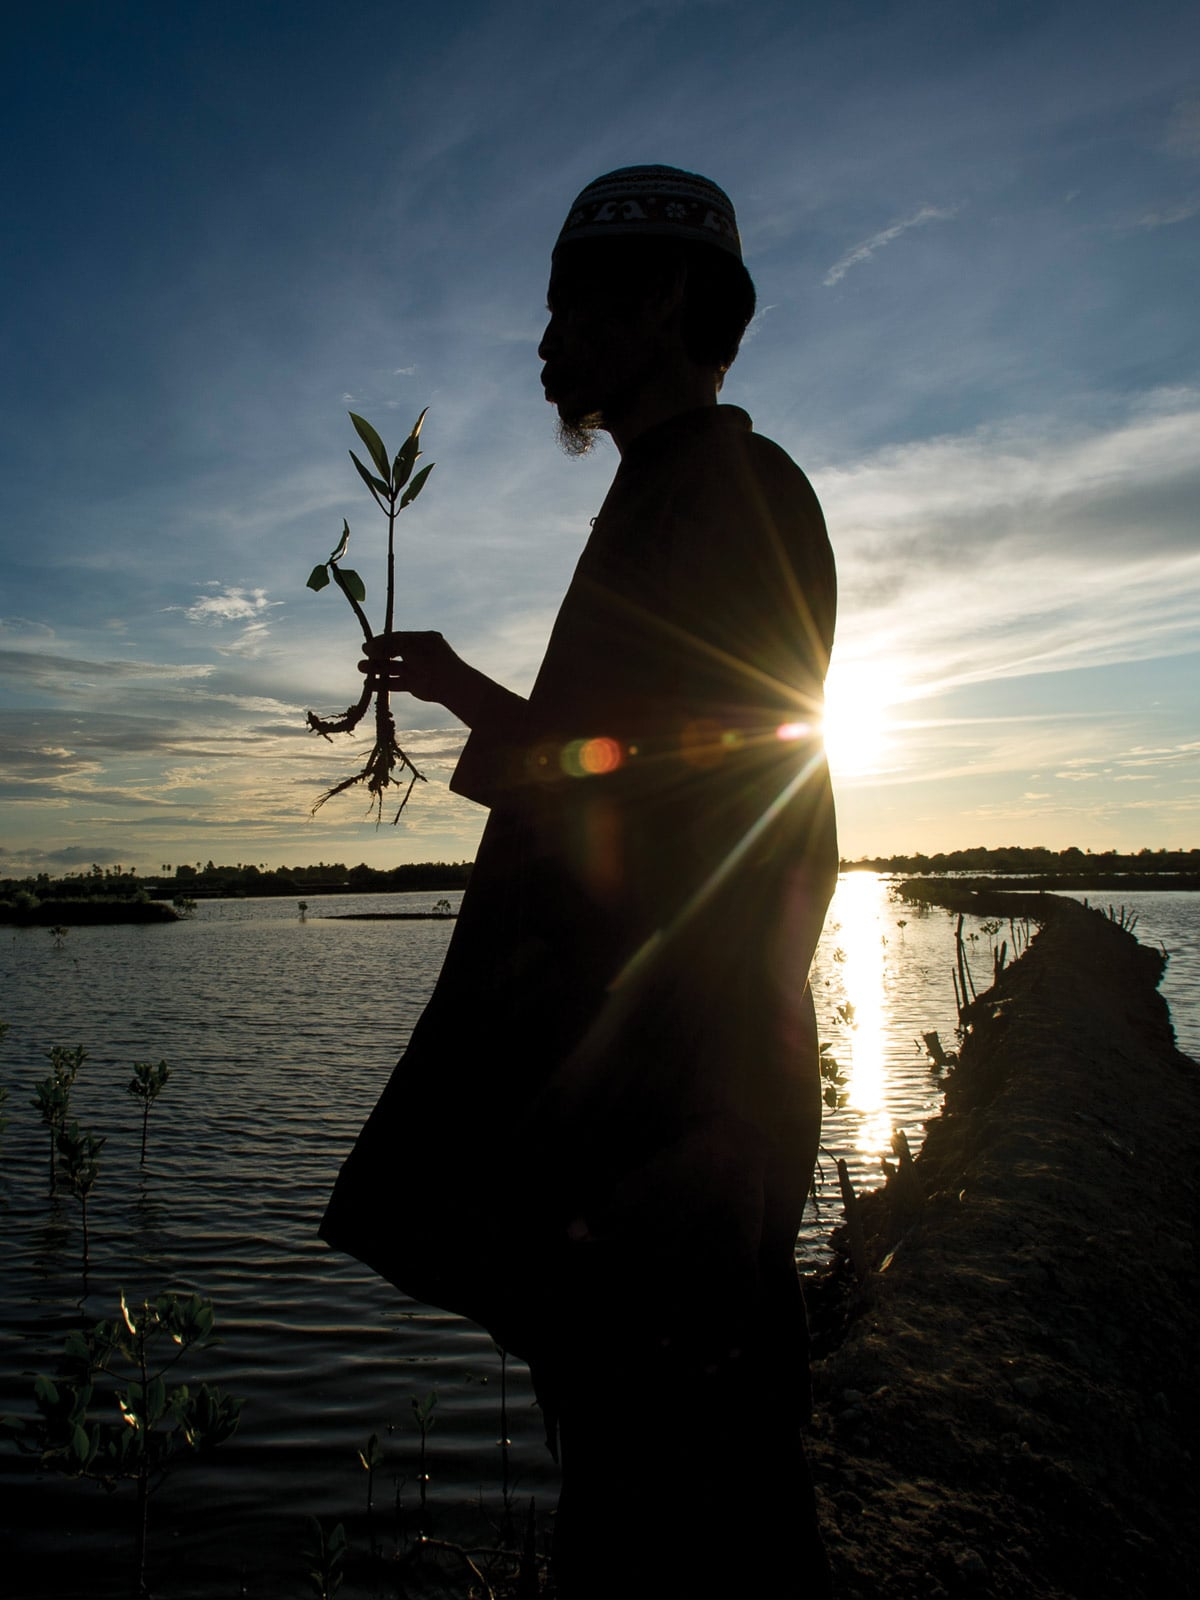 Man holding a plant to restore the mangrove